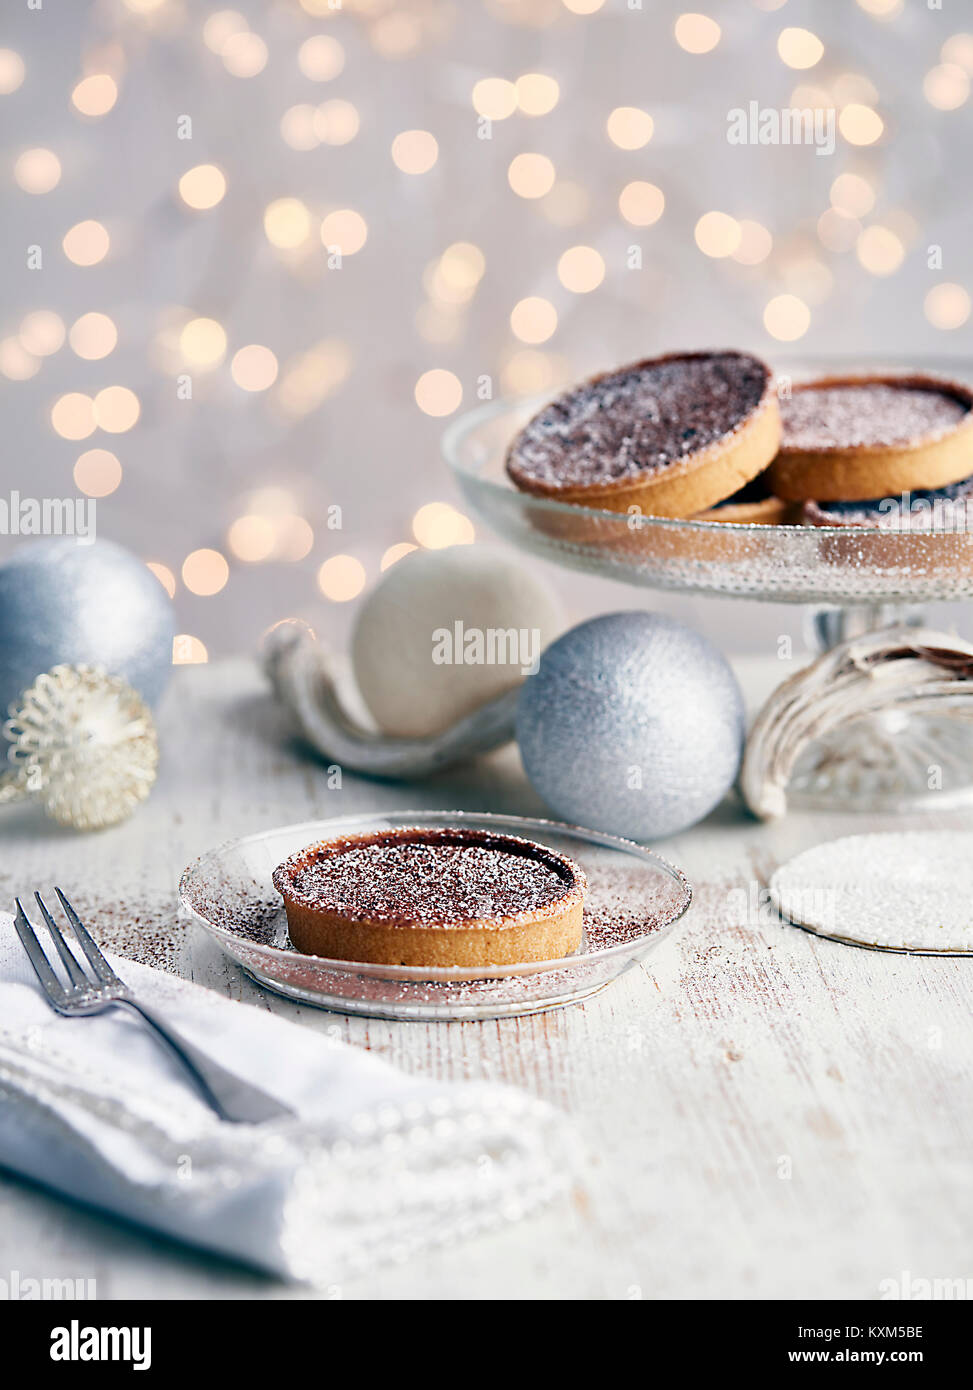 Christmas tarts dusted with sugar,Christmas baubles beside them - Stock Image